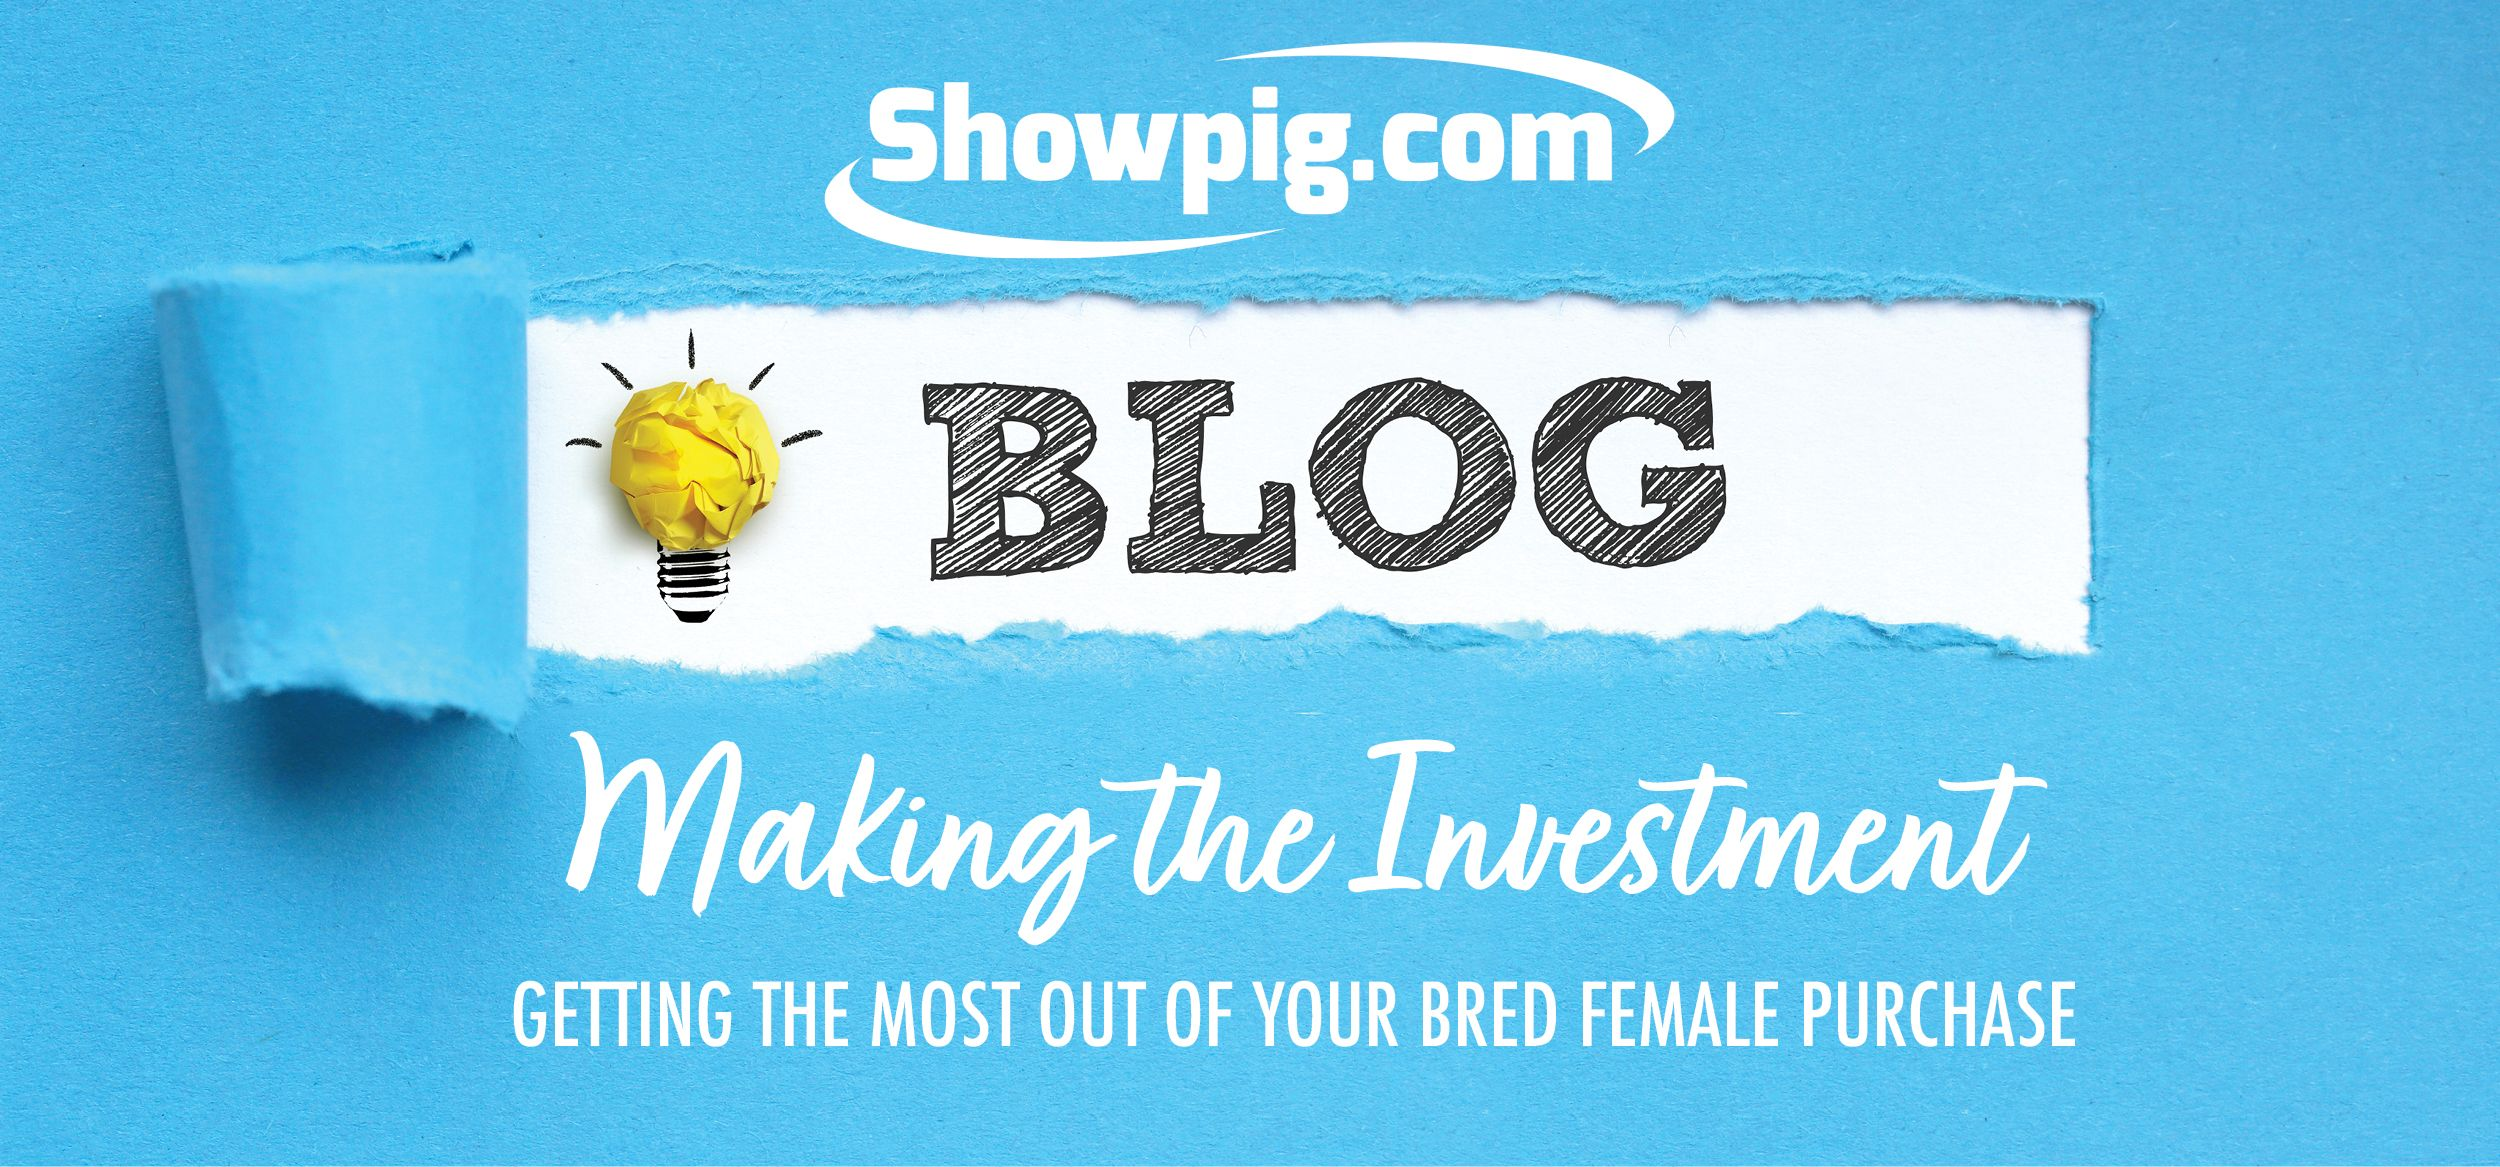 Featured image for the article titled Making the Investment: Getting the Most Out of Your Bred Gilt Purchase